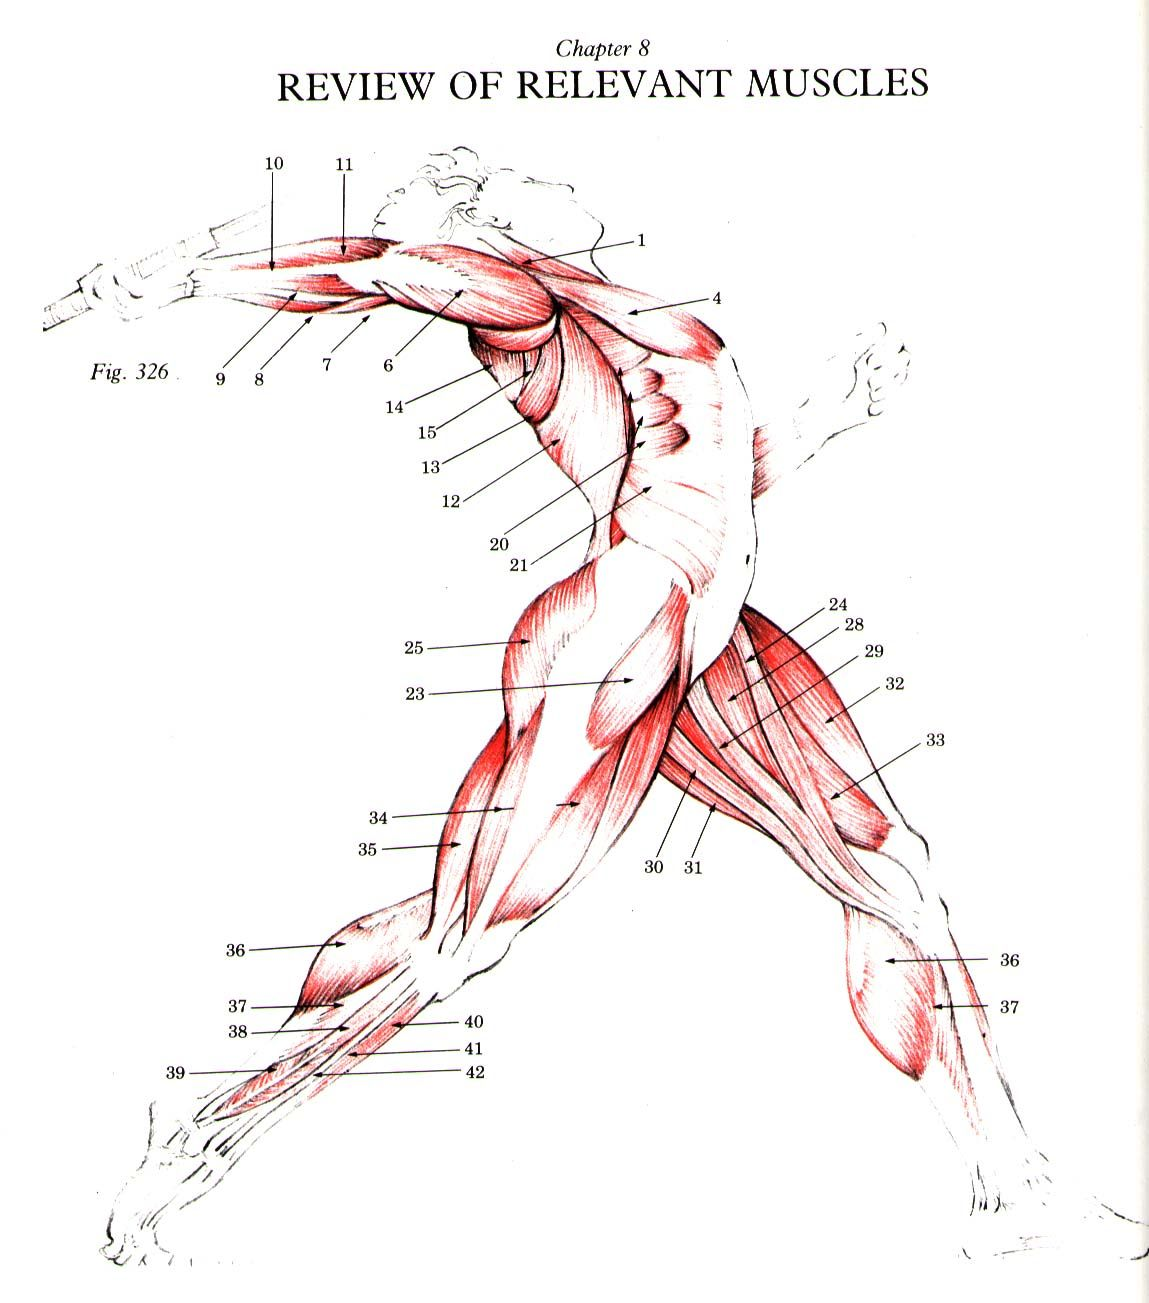 Physics of Sports course, human motion, energy, mechanics, power ...